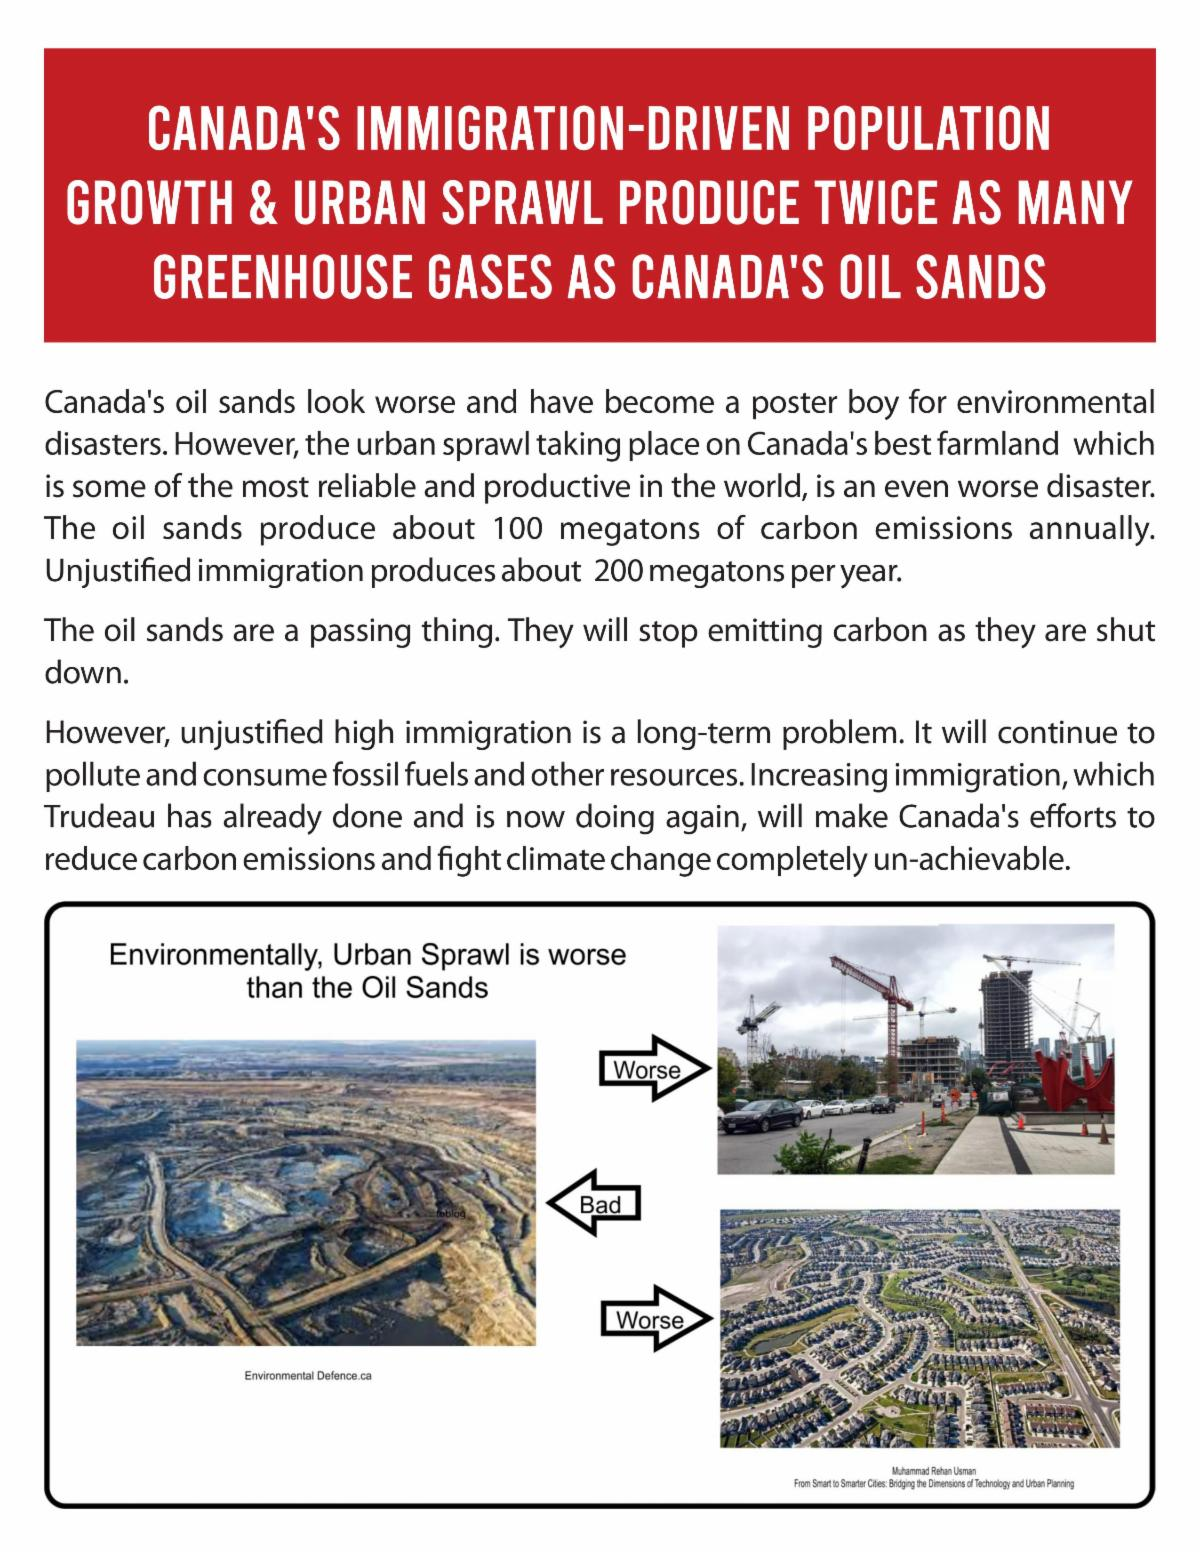 Canada's Immigration-Driven Population Growth causes twice as many GHG's as Our Oil Sands